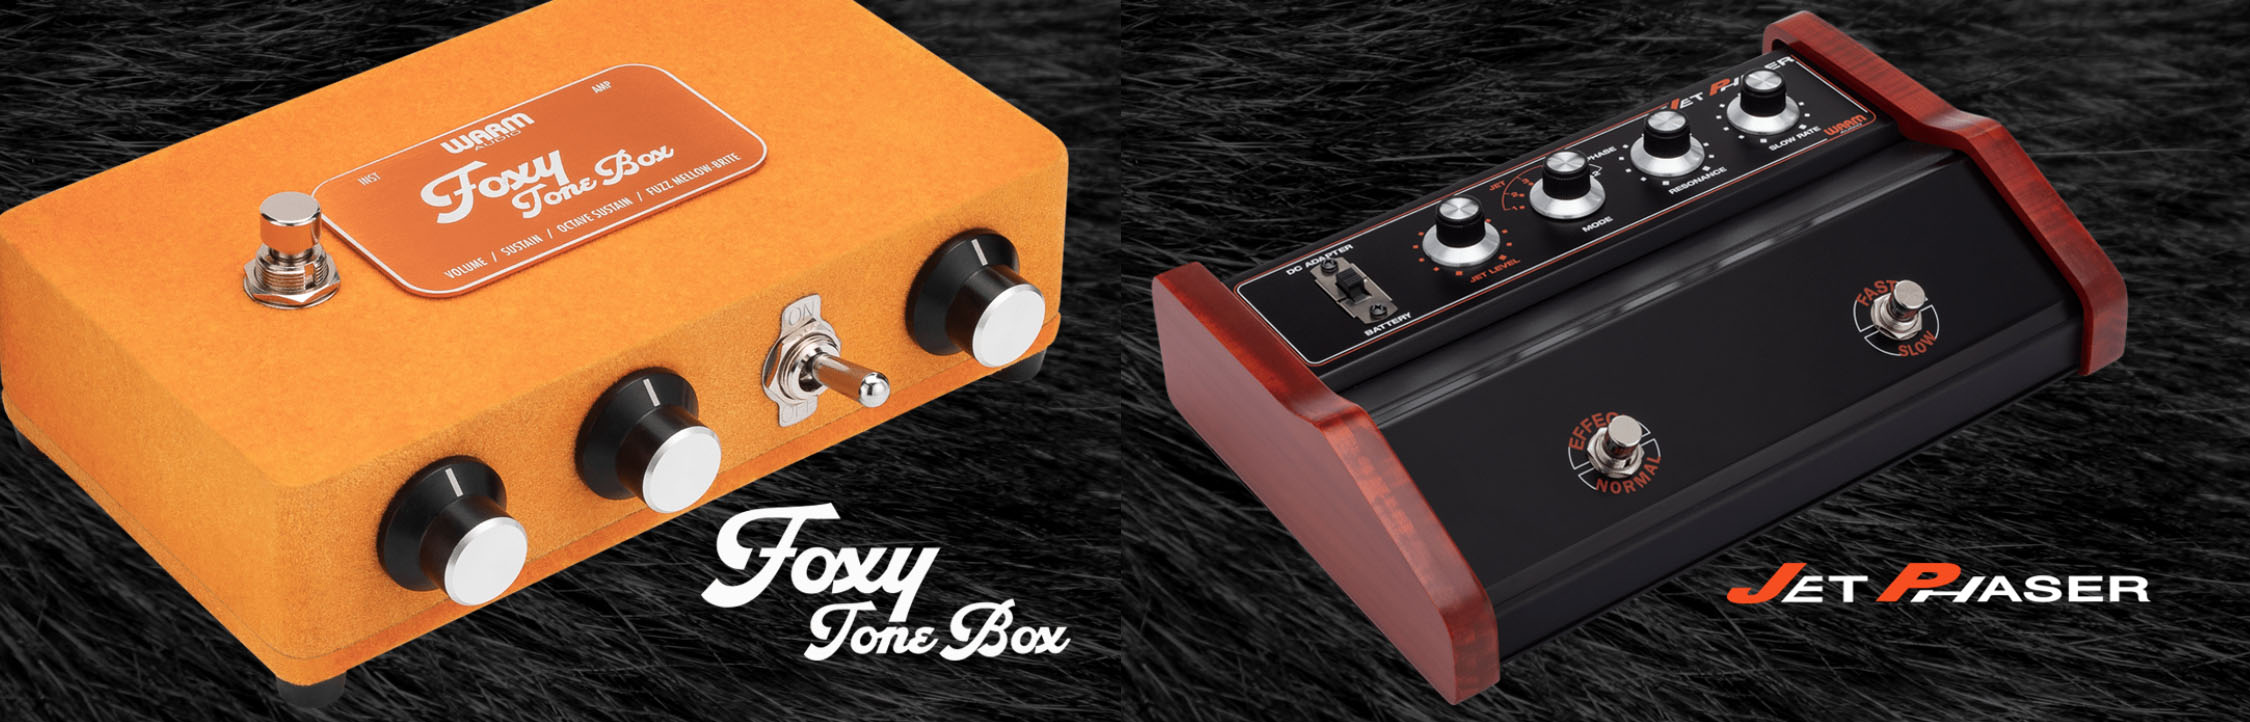 Jet Phaser & Foxy Tone Box! Nytt från Warm Audio